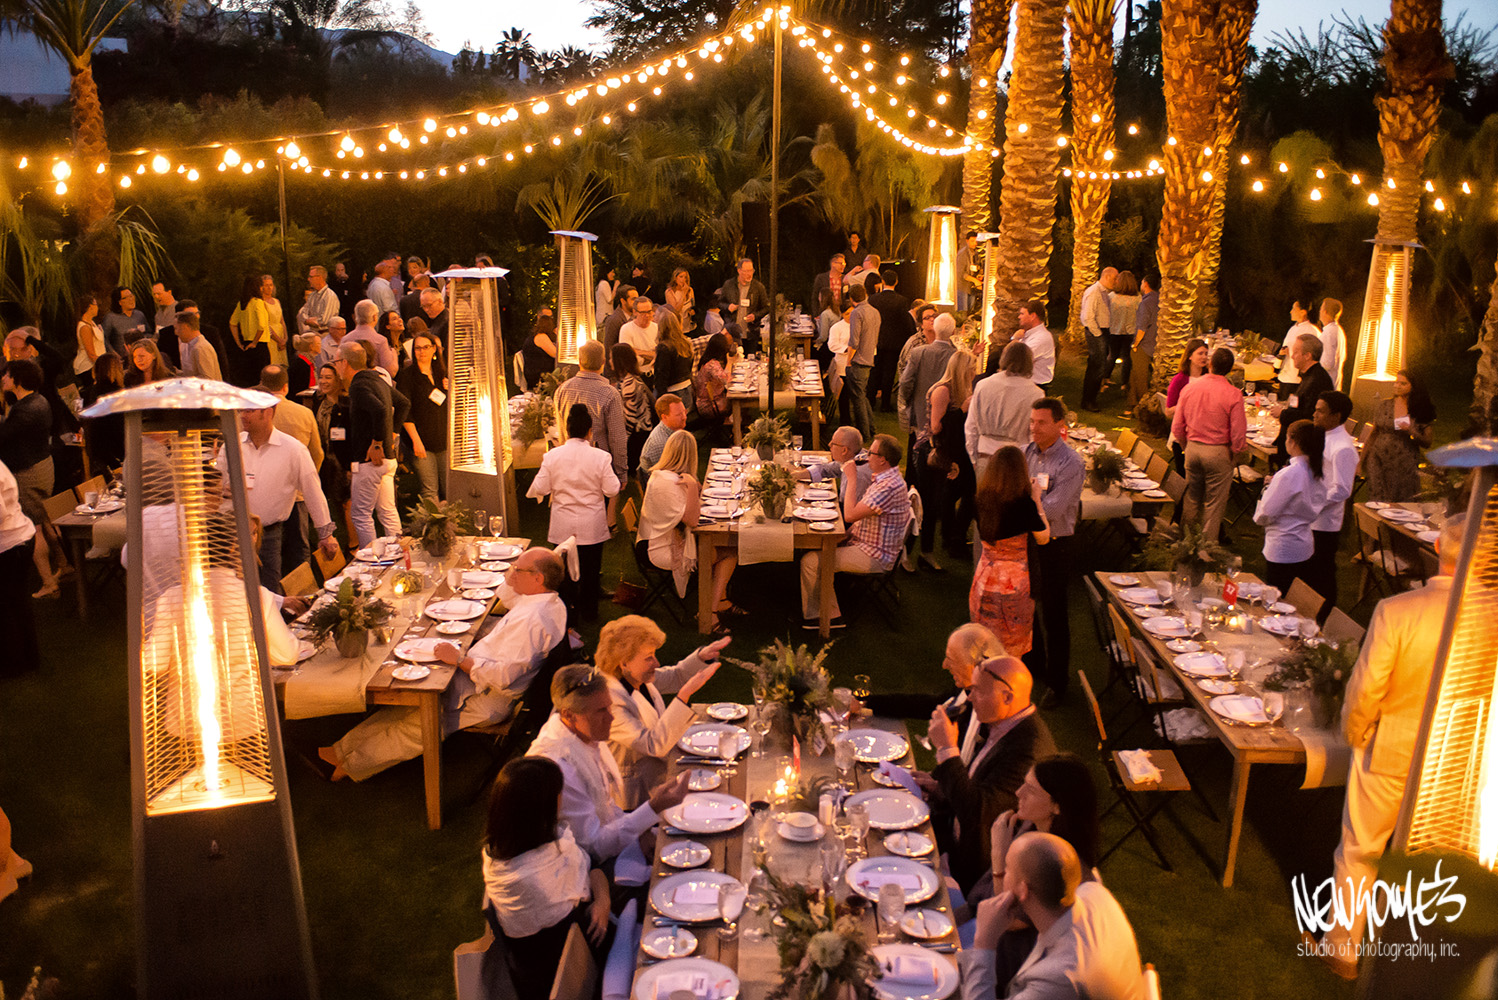 corporate event photographer newsome s studio of photography inc garden party dinner